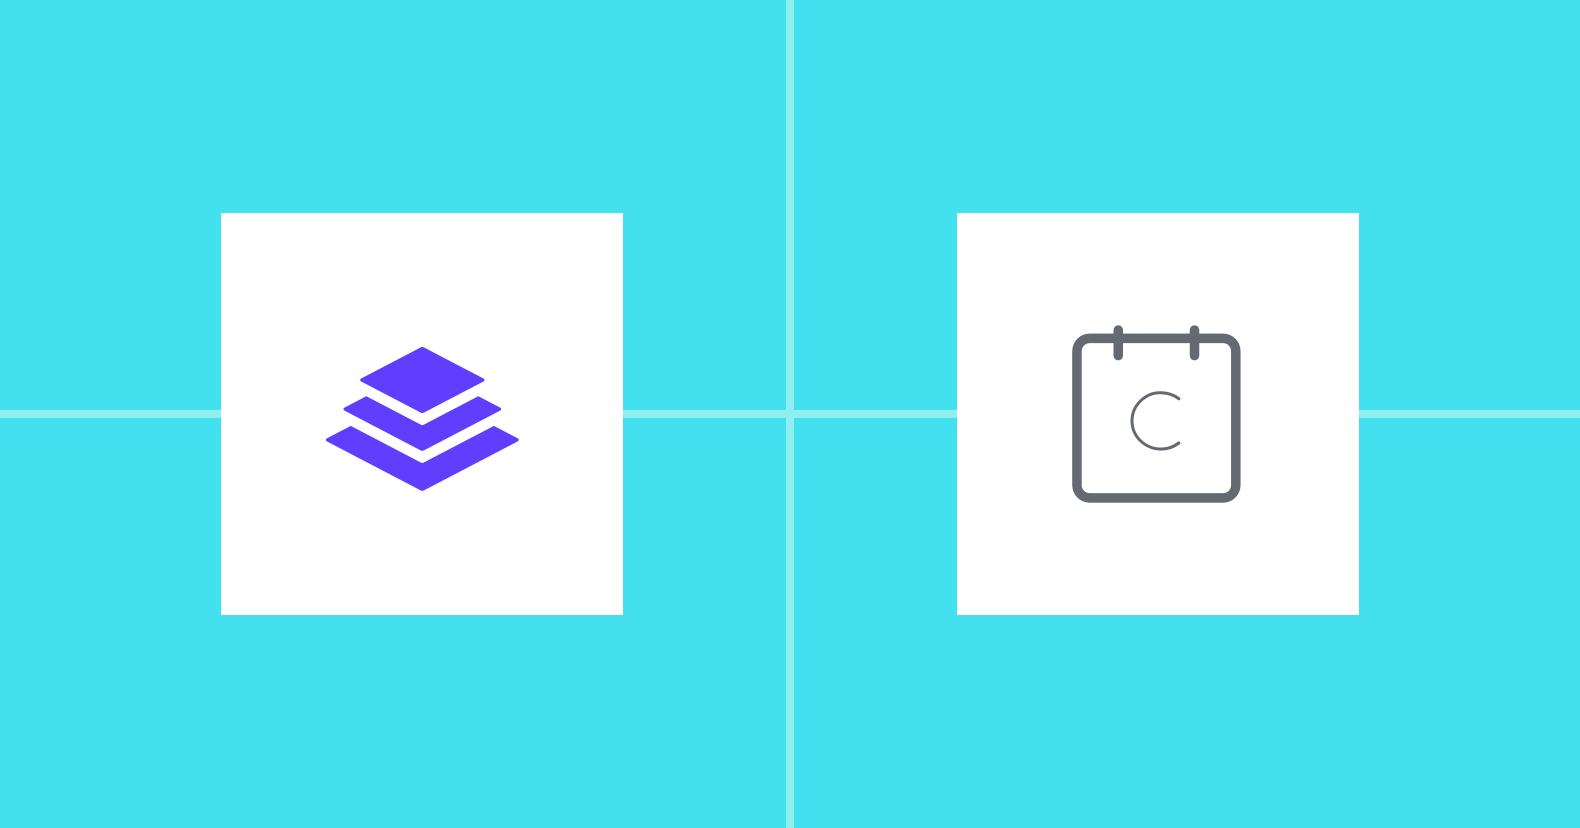 Leadpages integrates with Calendly